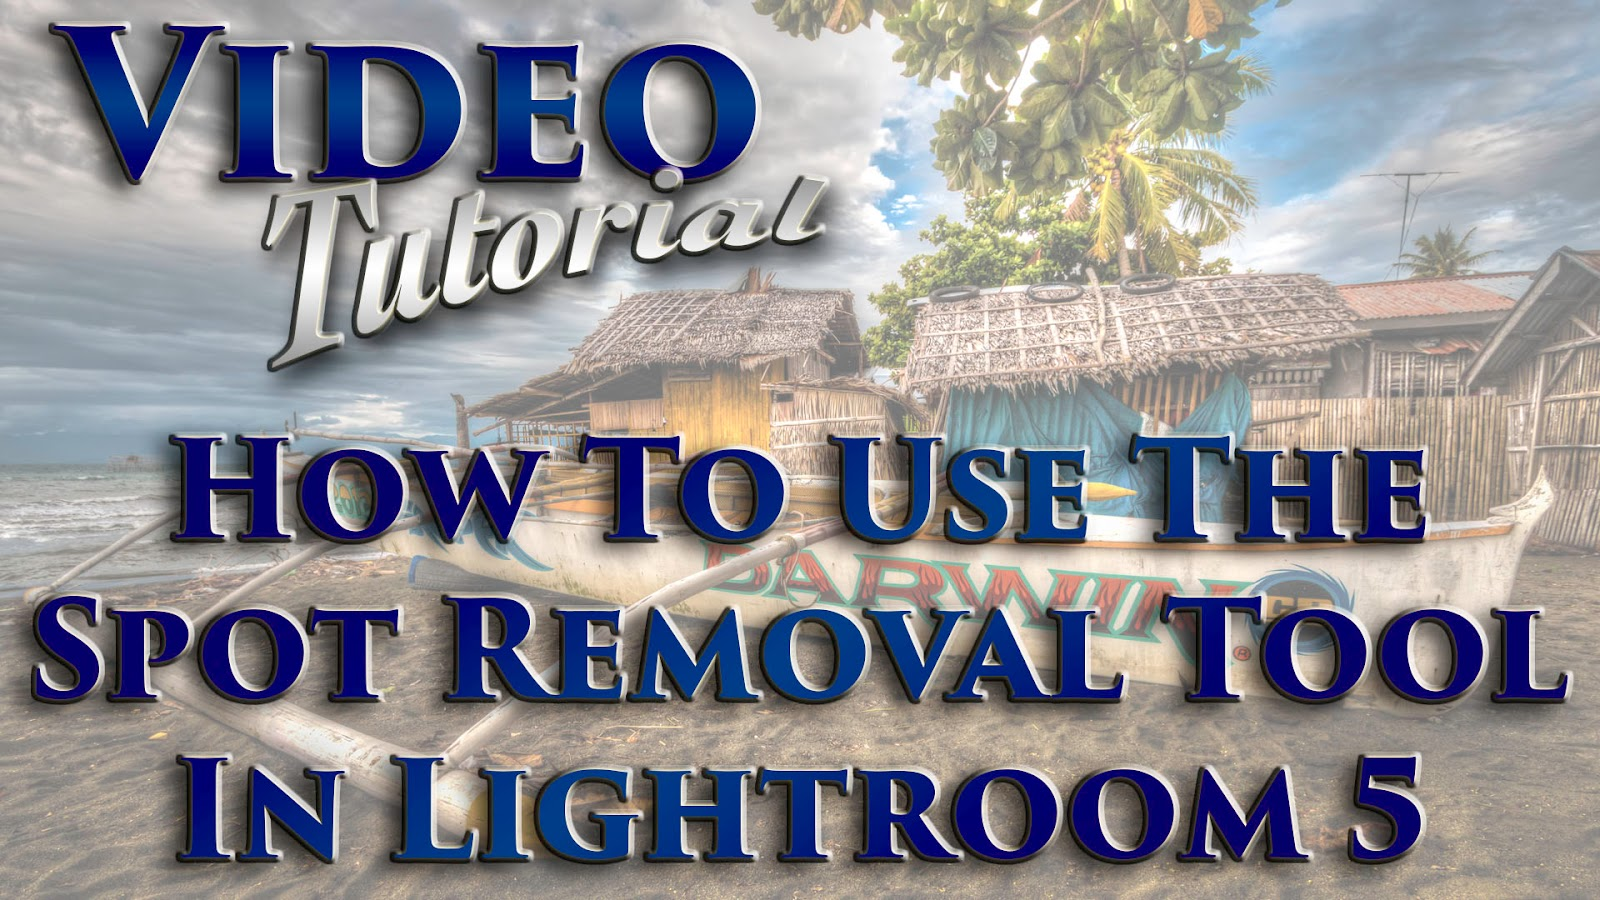 Learn How To Use The Spot Removal Tool In Lightroom 5